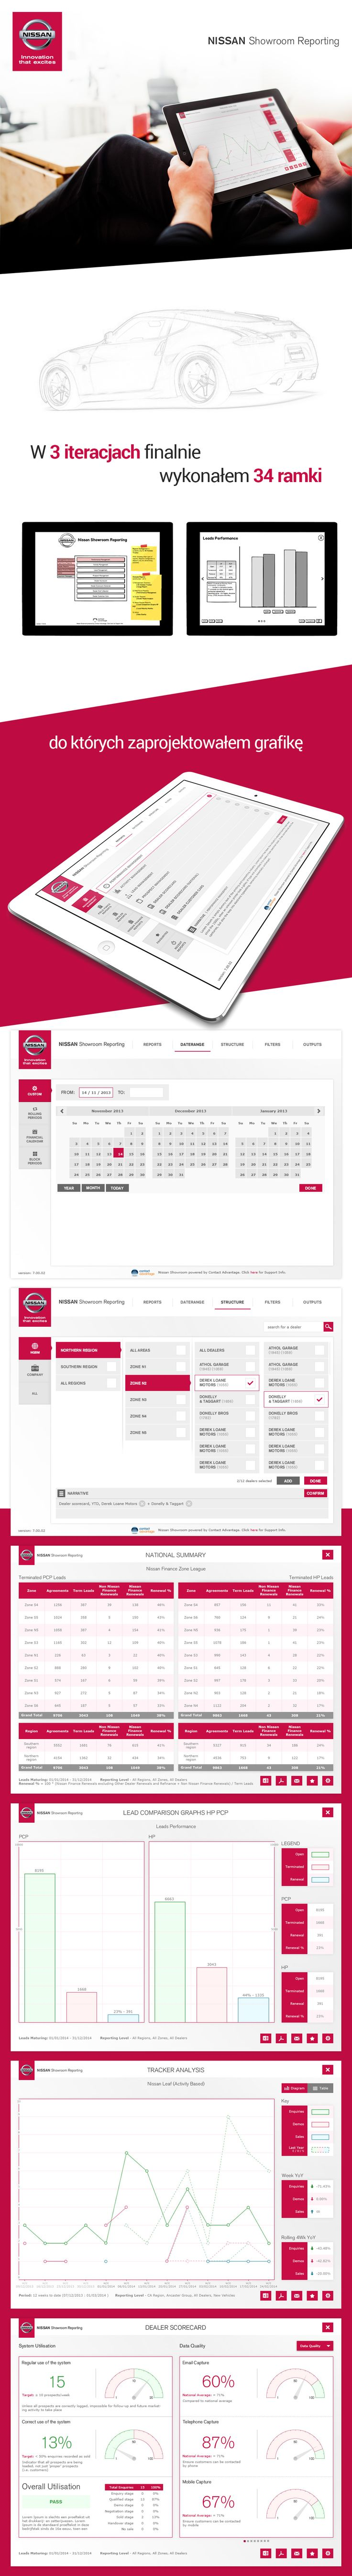 Nissan Showroom Reporting | UI/UX | User Interface | Photoshop | Diagrams